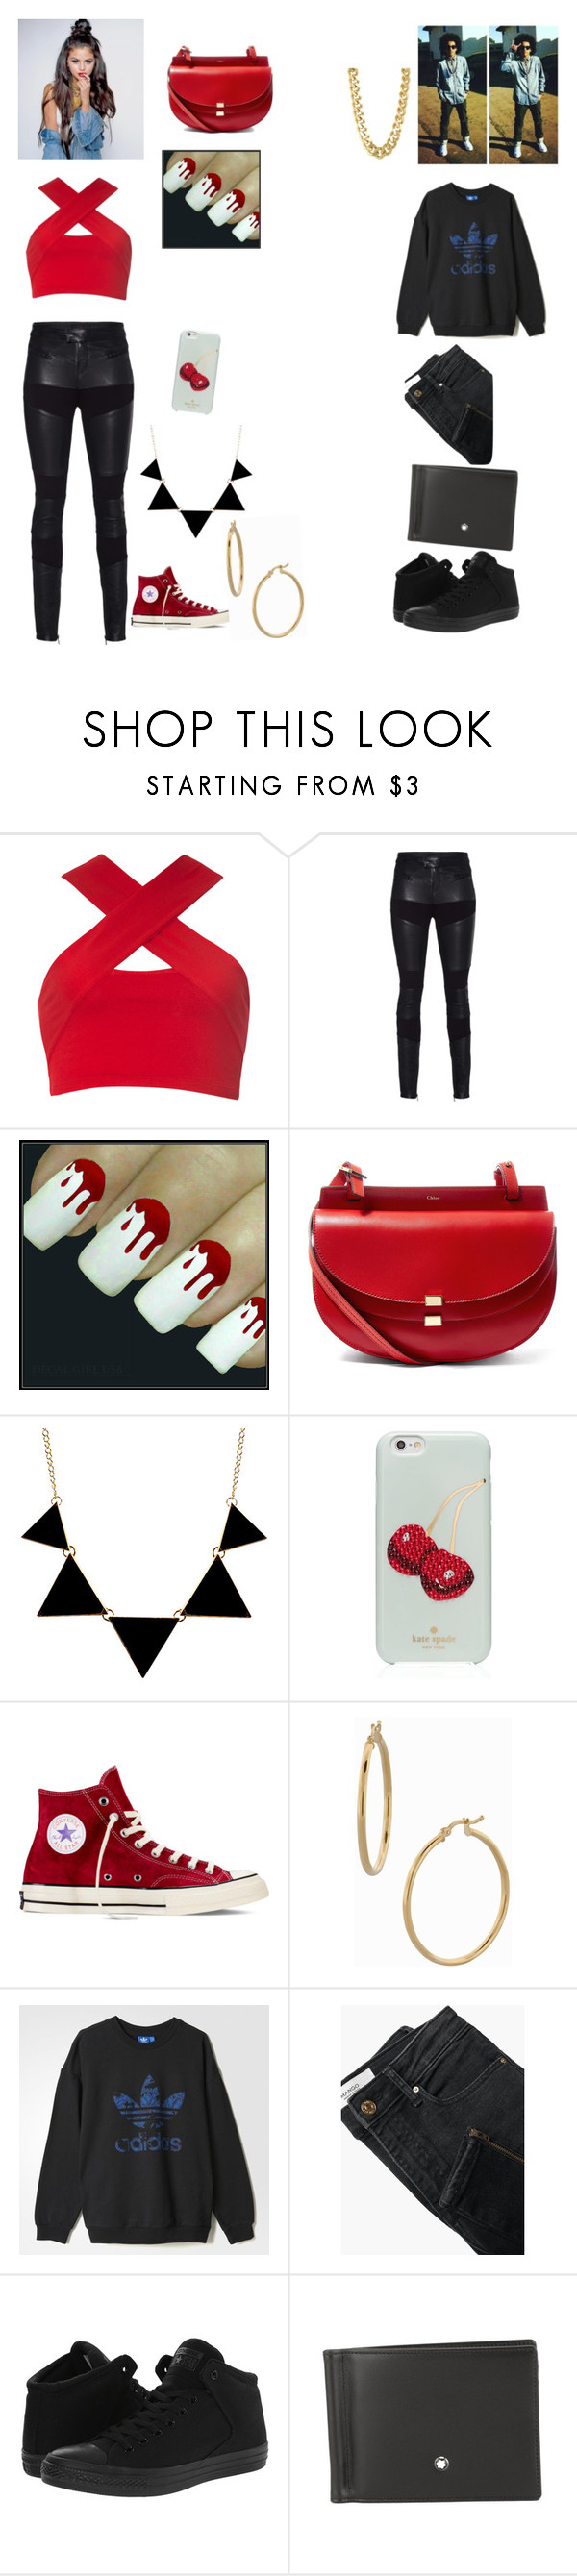 """""""Meeting up with friends"""" by leabush ❤ liked on Polyvore featuring Motel, TIGHA, Chloé, Kate Spade, Converse, Bony Levy, adidas, MANGO, Montblanc and CC SKYE"""